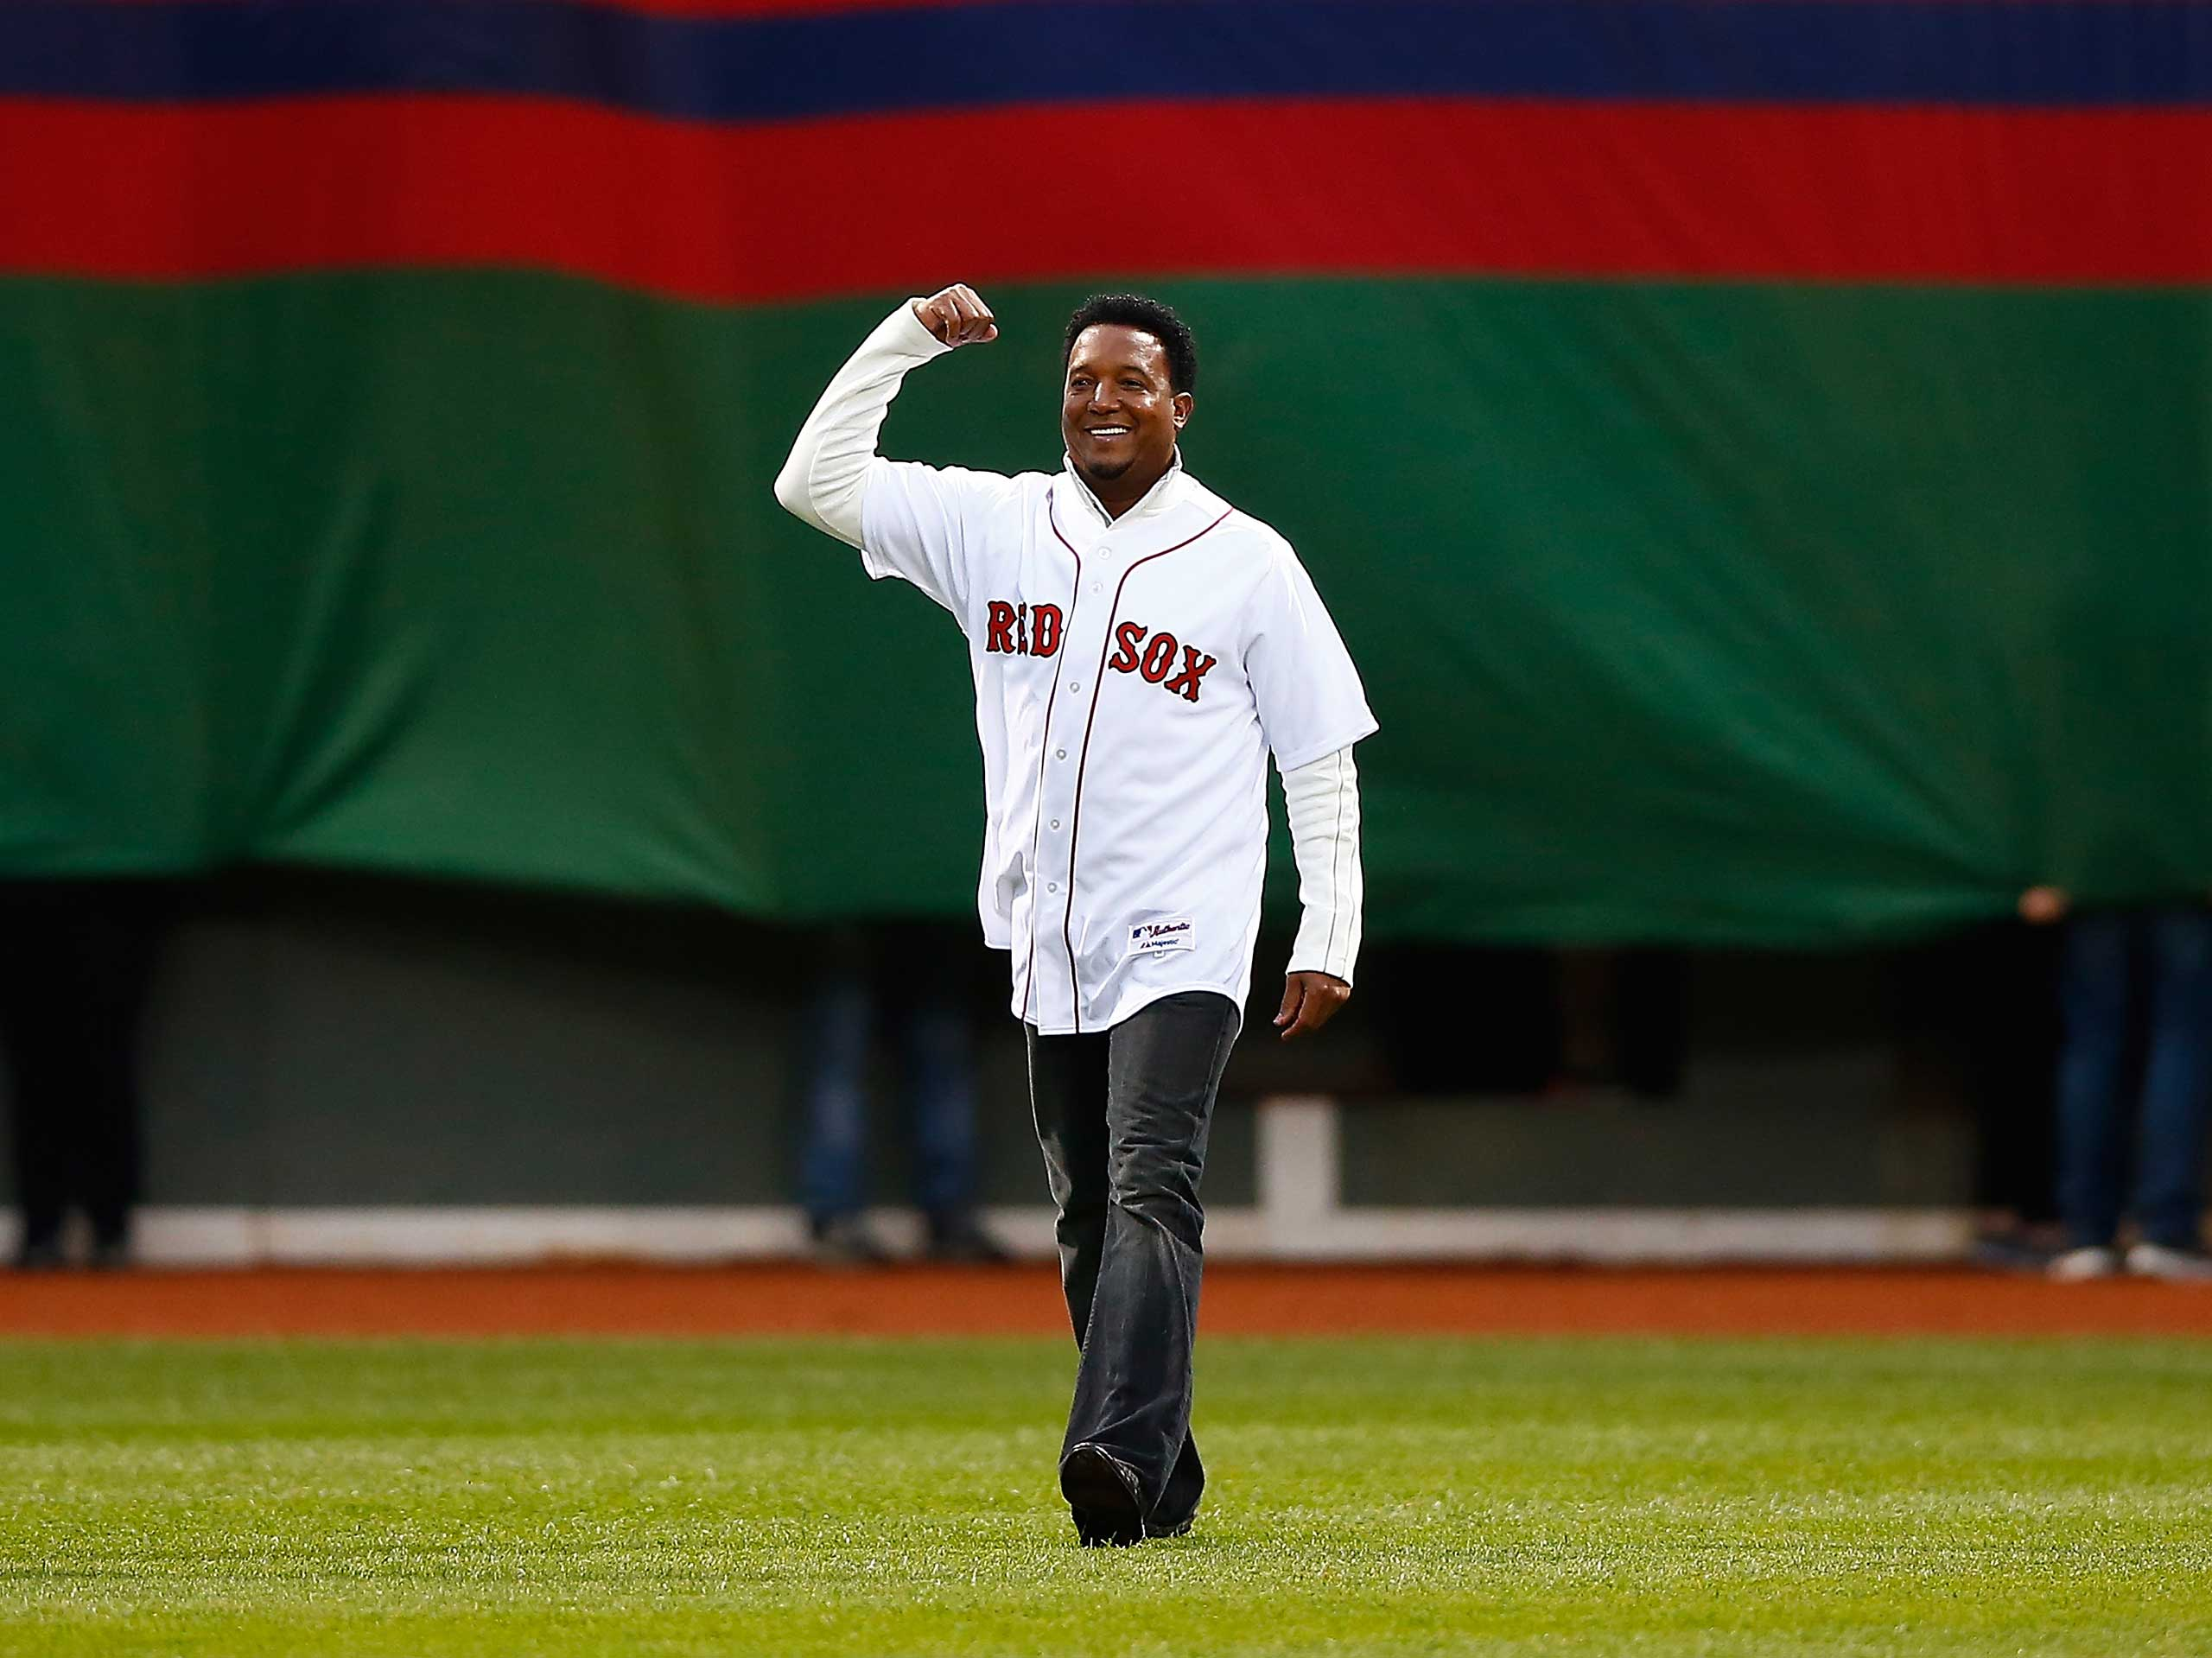 Former Boston Red Sox player Pedro Martinez is honored prior to the game between the Boston Red Sox and Atlanta Braves at Fenway Park in Boston on May 28, 2014.